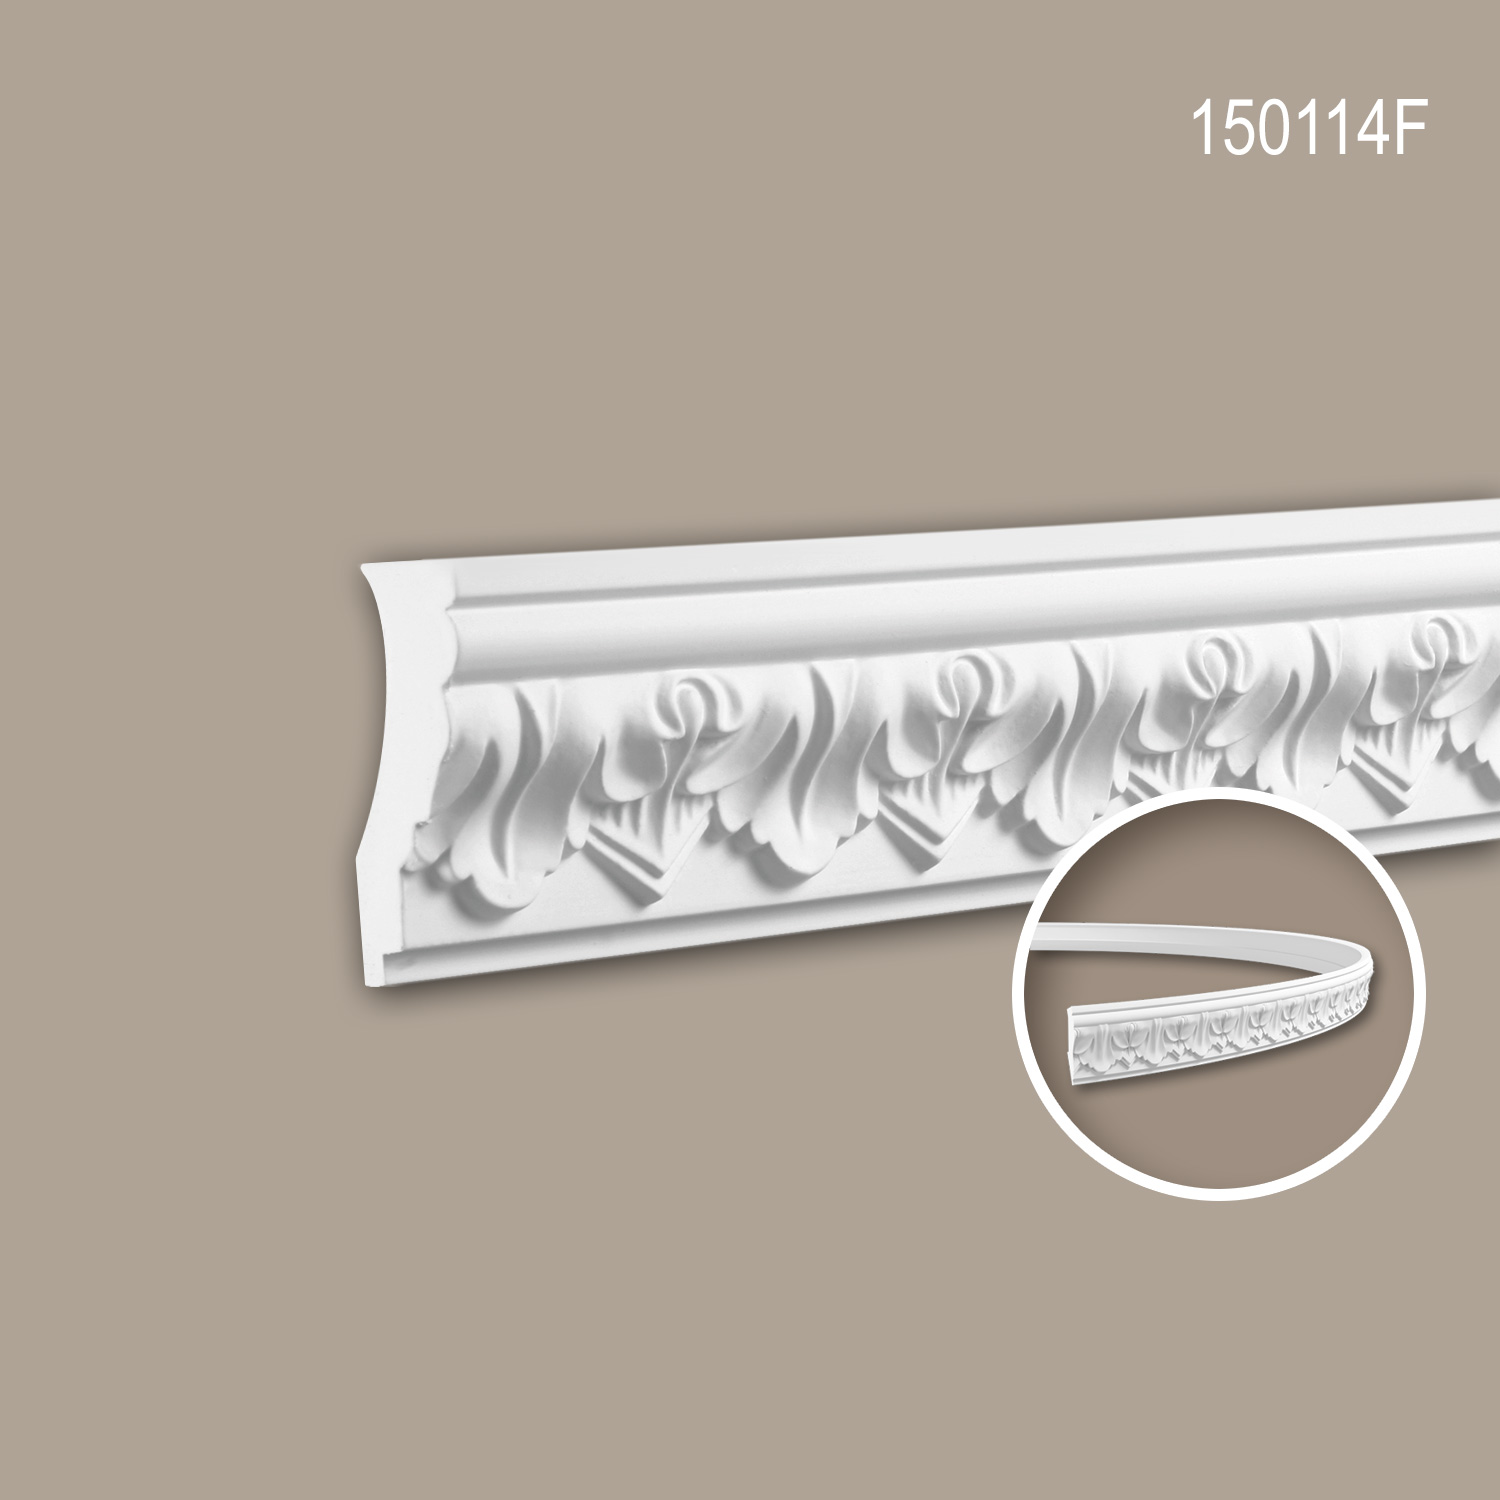 Cornice Moulding Decorative Moulding Flexible Moulding For Decoration 2 M 150114f Profhome Ceres Webshop